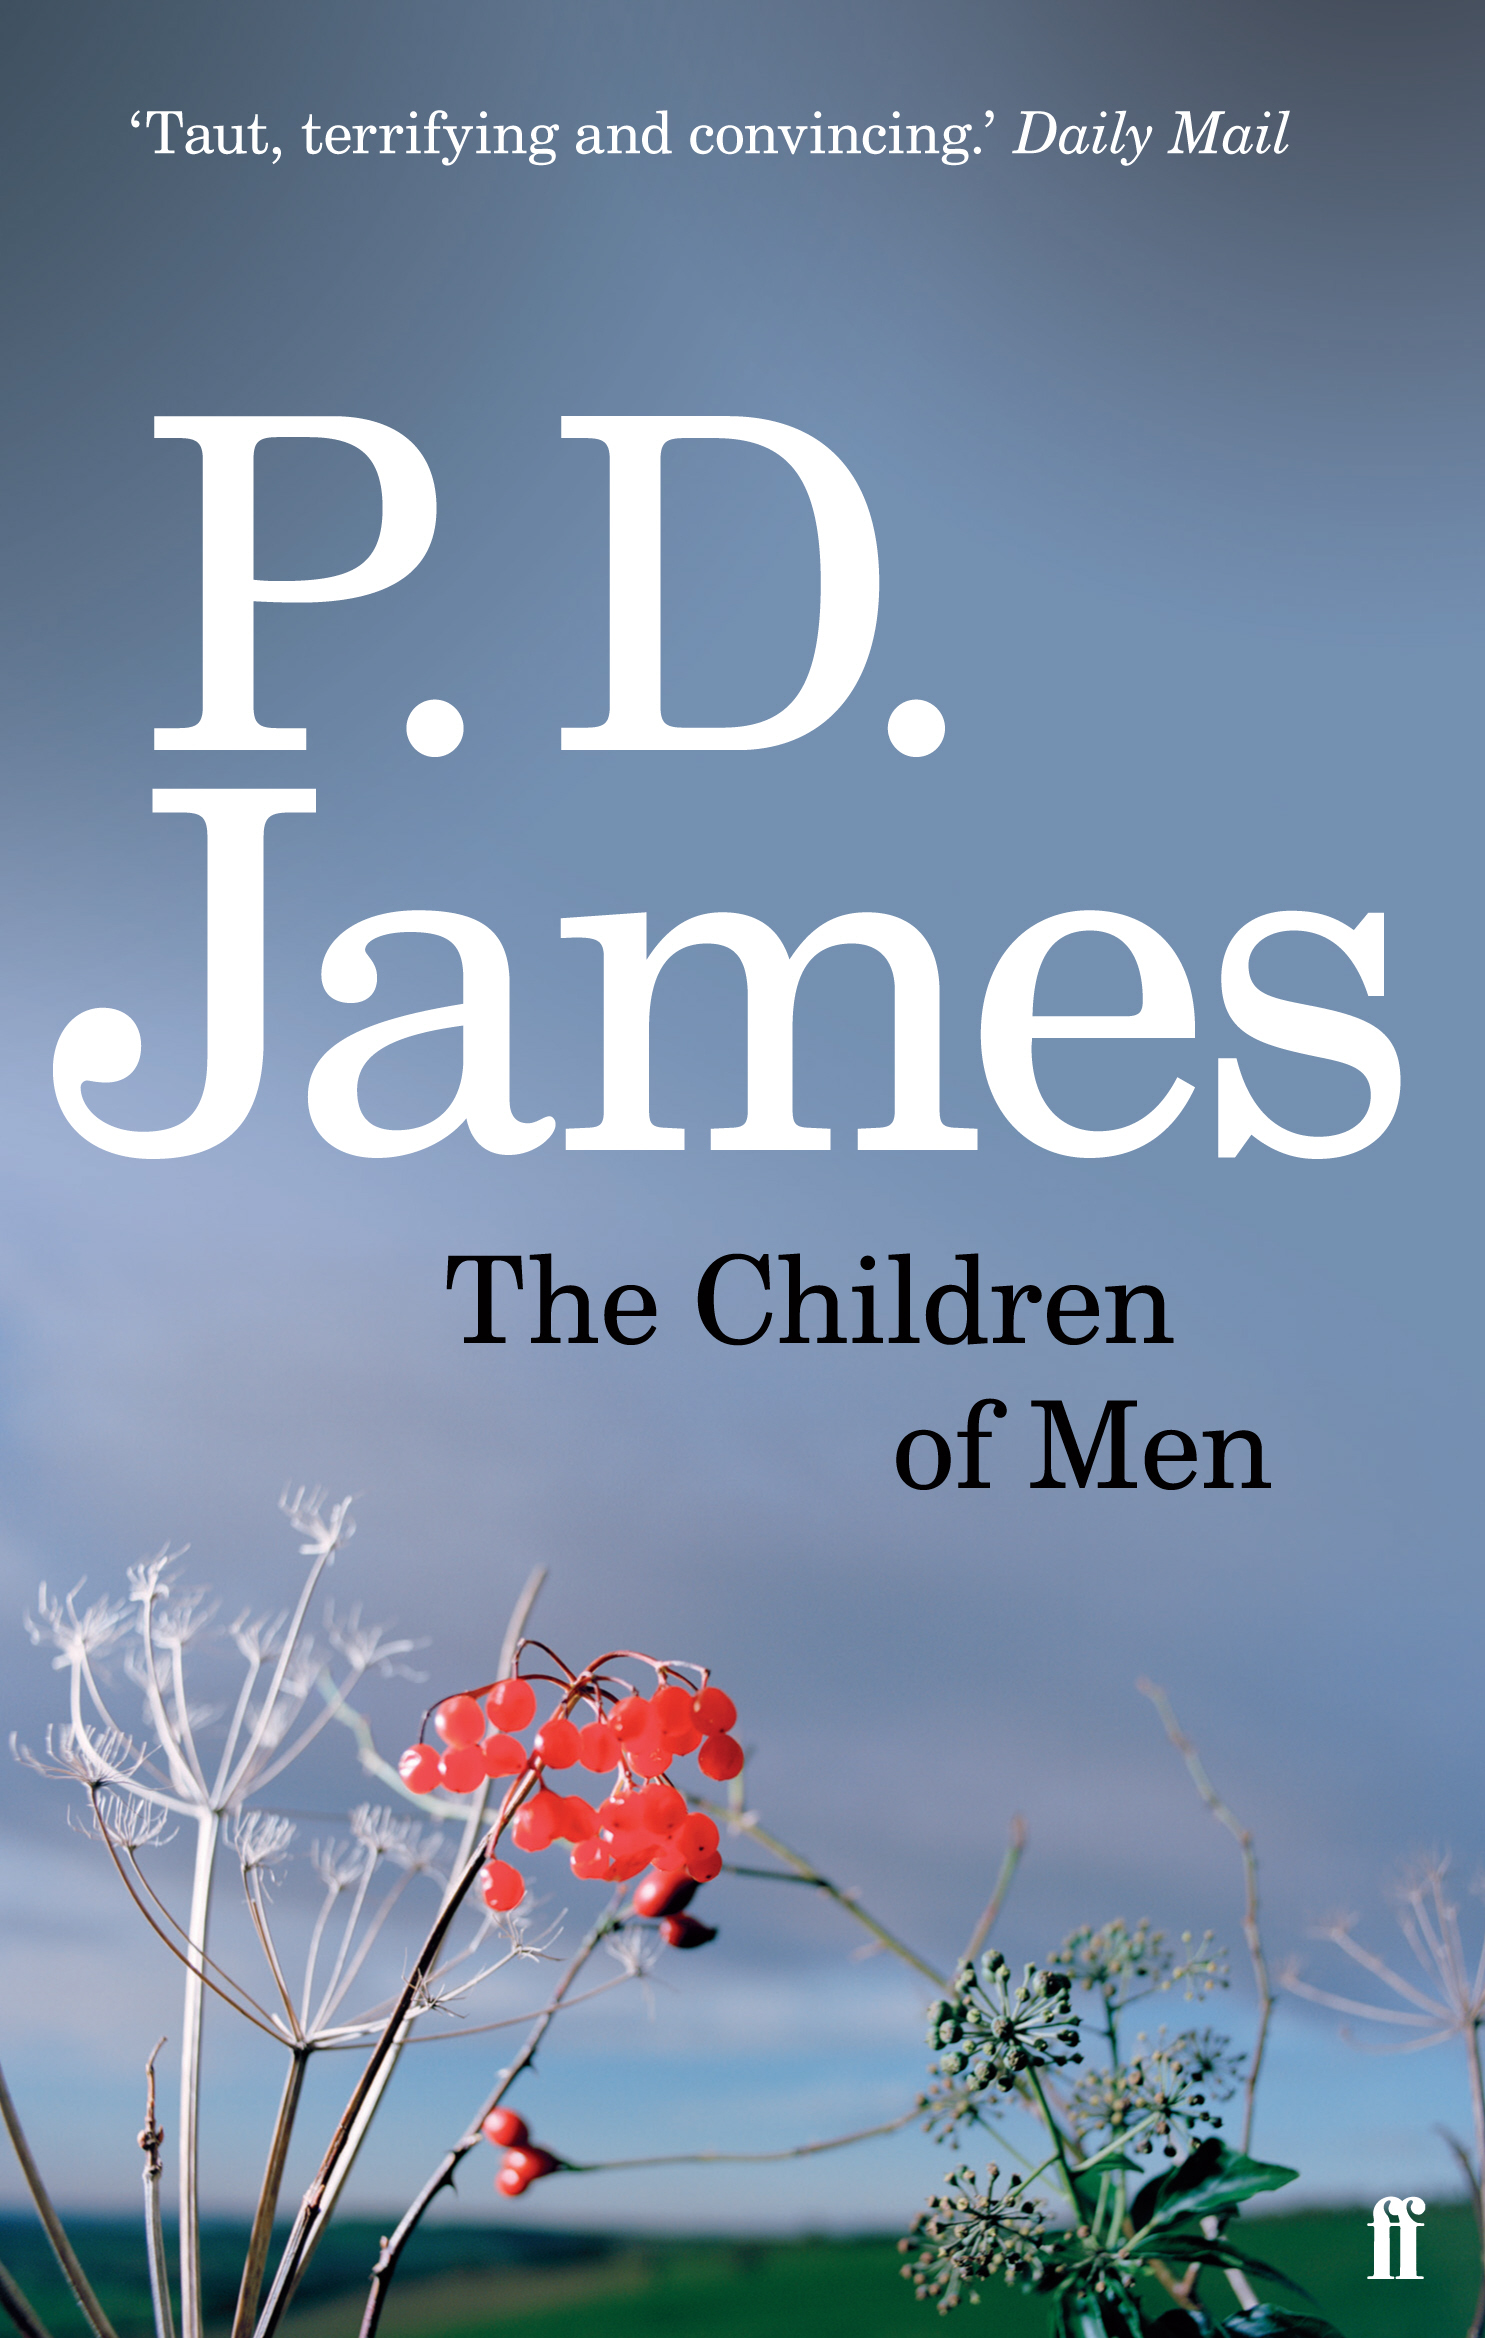 children of men by p d james While pd james is assuredly one of the greatest of british mystery writers, this book places her in the exclusive class of authors of great dystopian fictions as well though a best-seller simply by virtue of having her name on the cover, the novel seems to have largely disappointed fans looking for another.